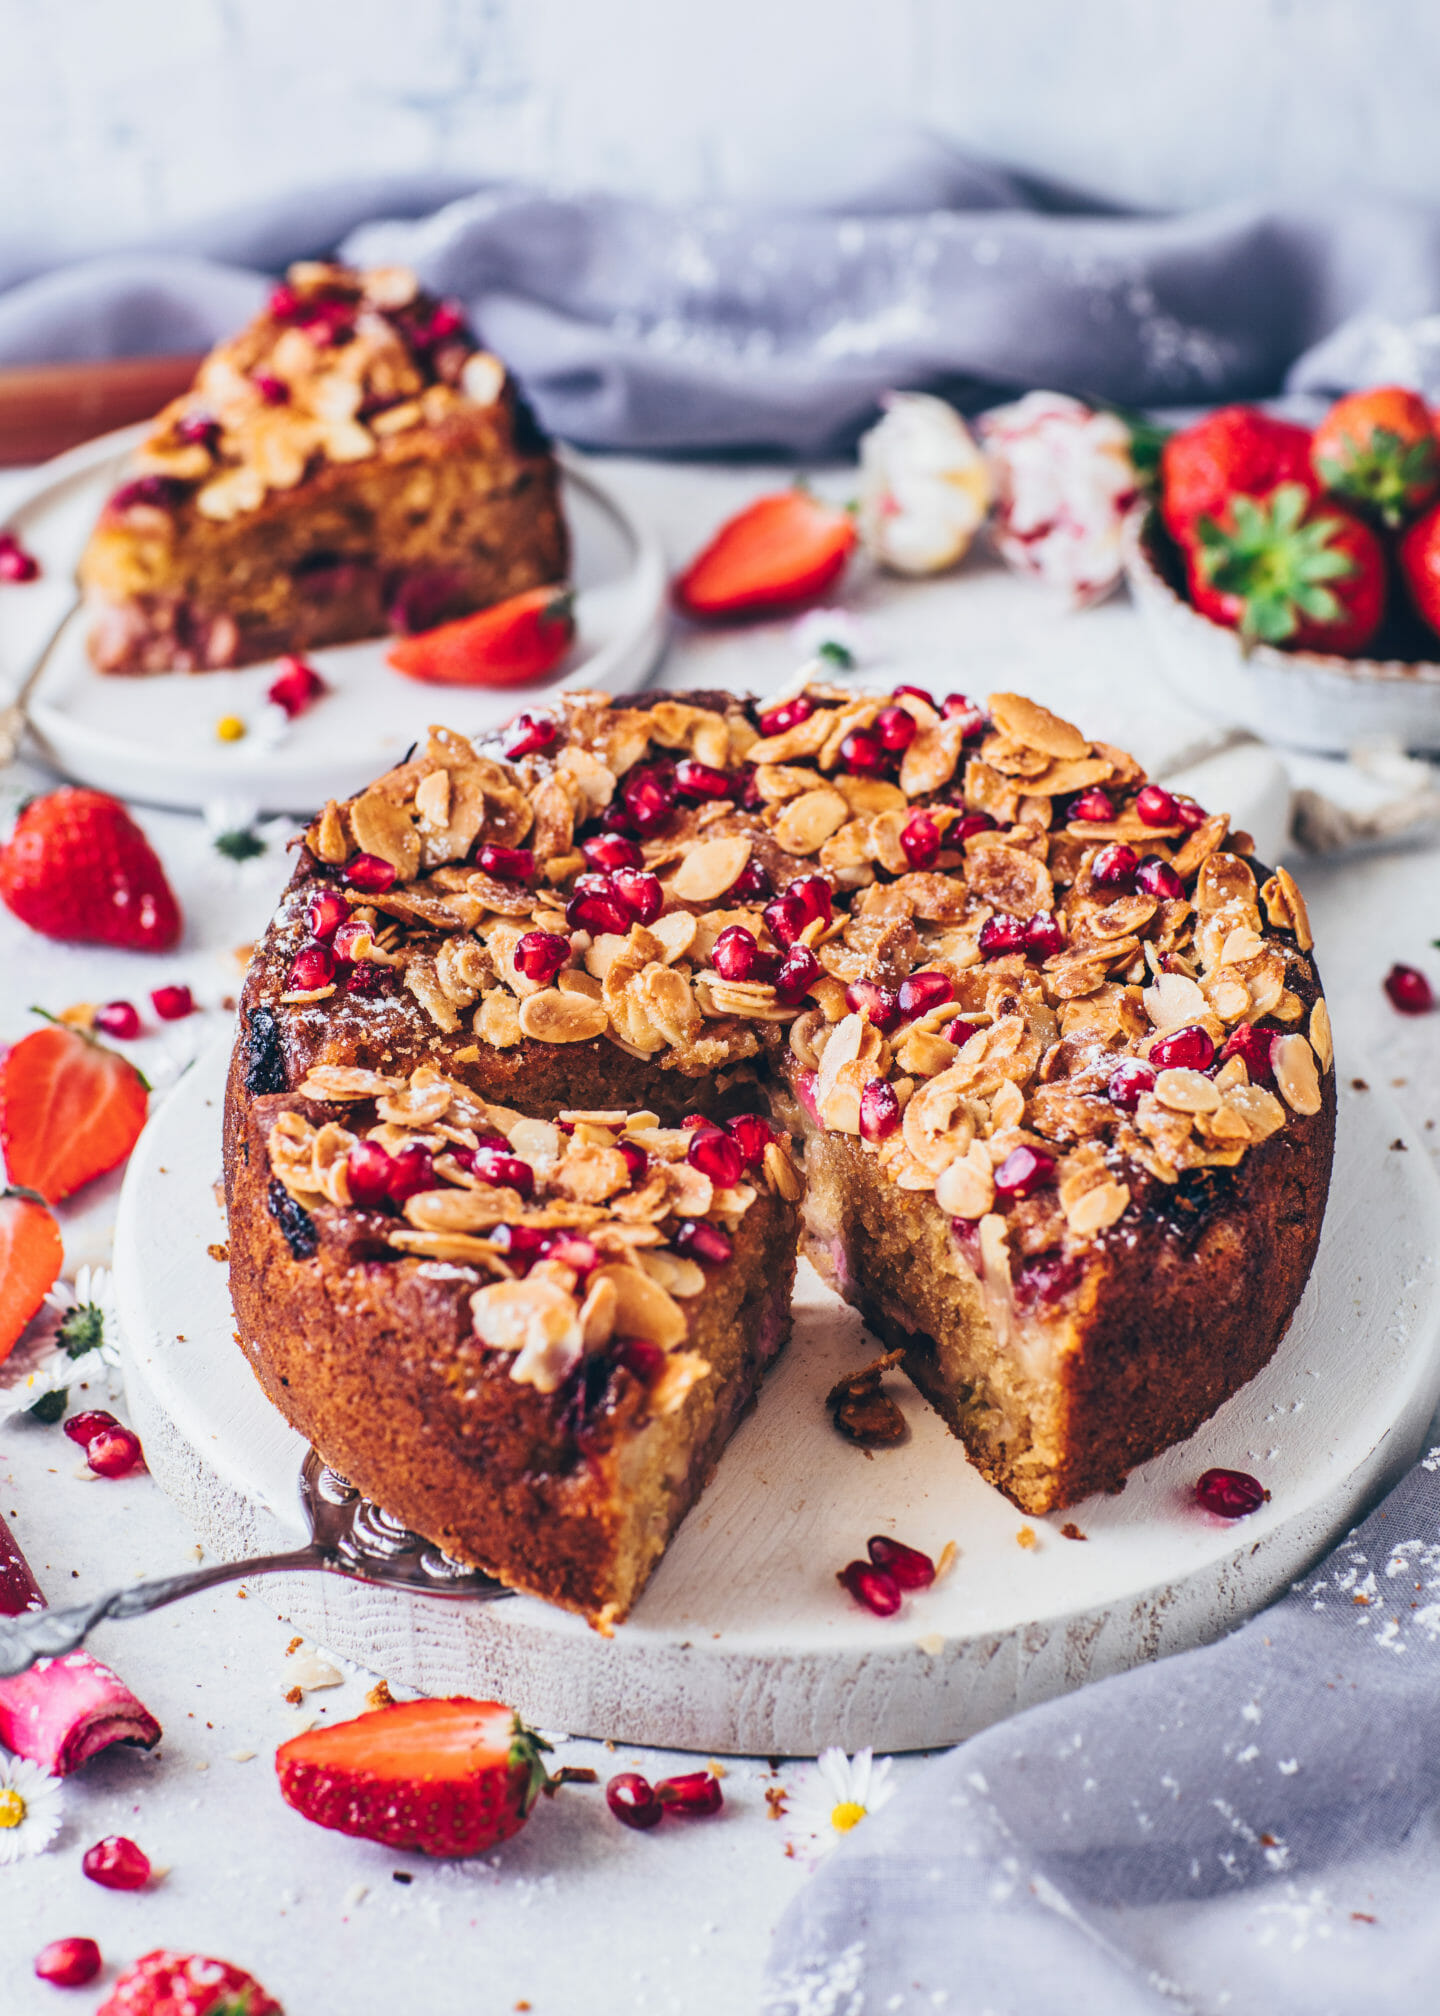 Strawberry Rhubarb Cake with Almond Topping (easy, vegan recipe)